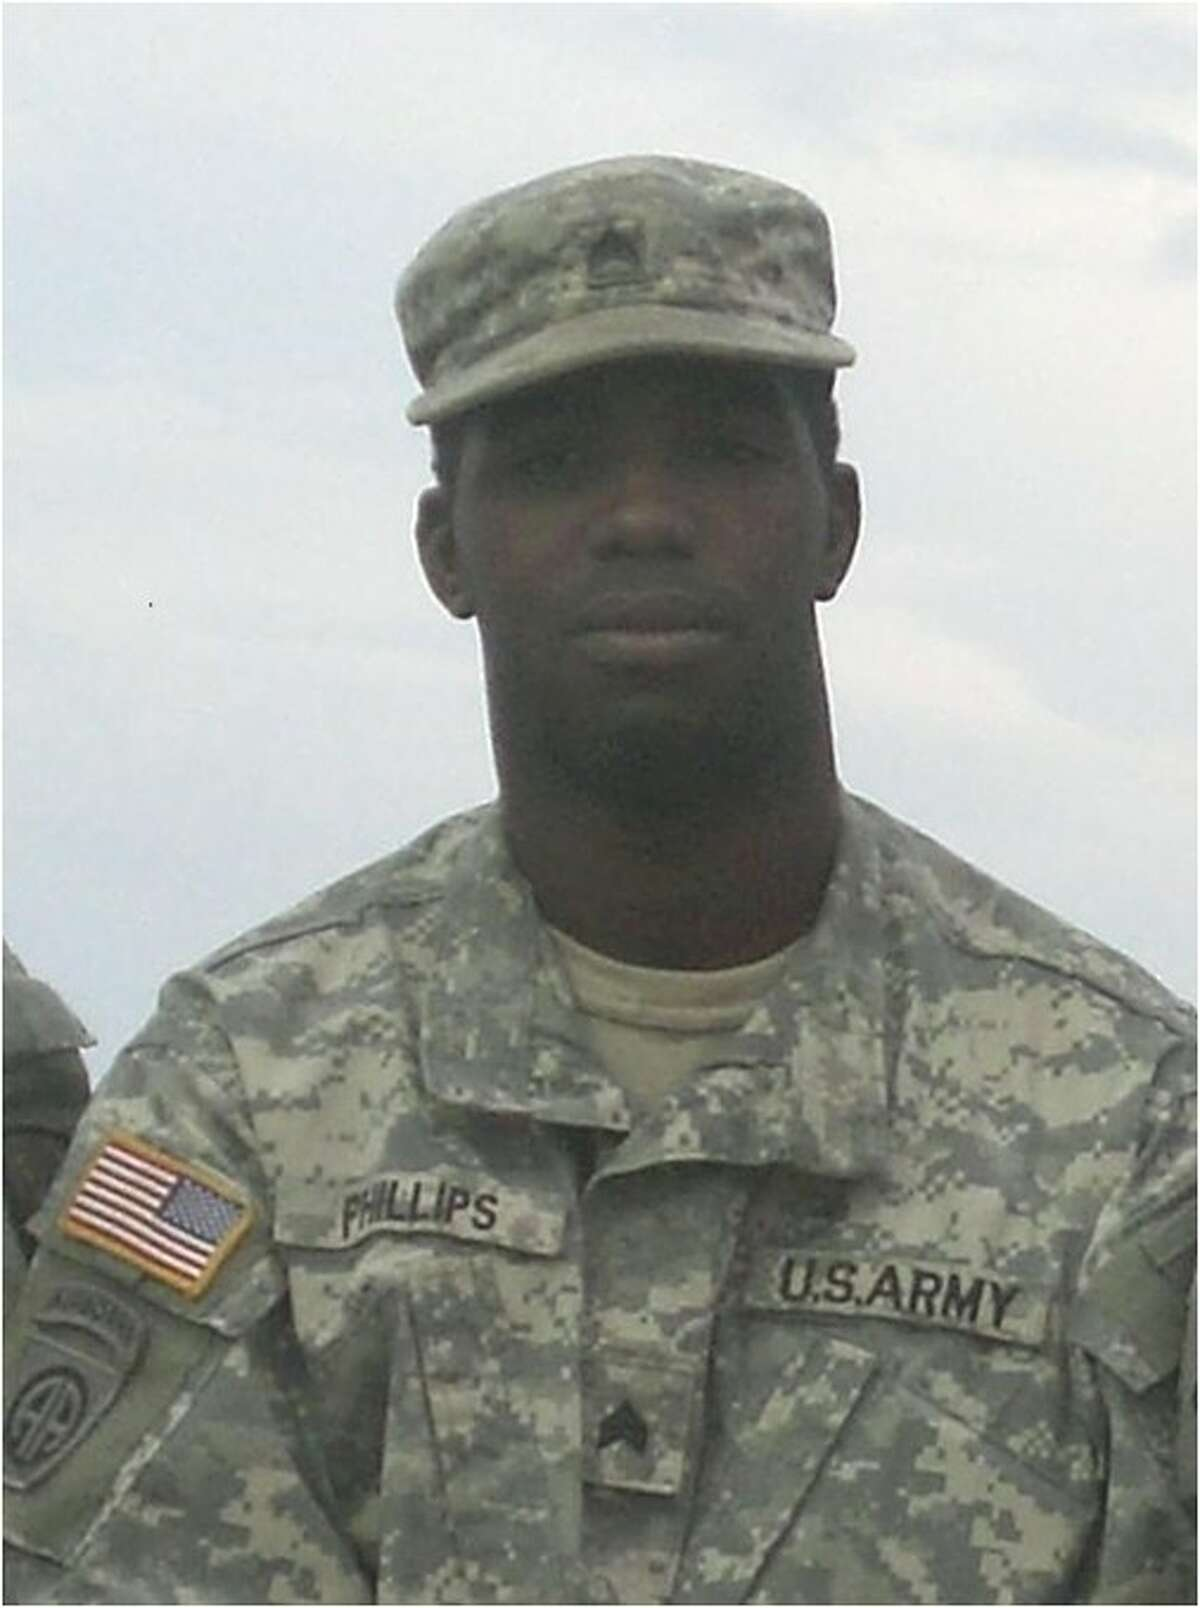 The U. S. Army Criminal Investigation Command believes someone from the Richmond area may have information on the 2009 murder of Staff Sgt. Anton R. Phillips.